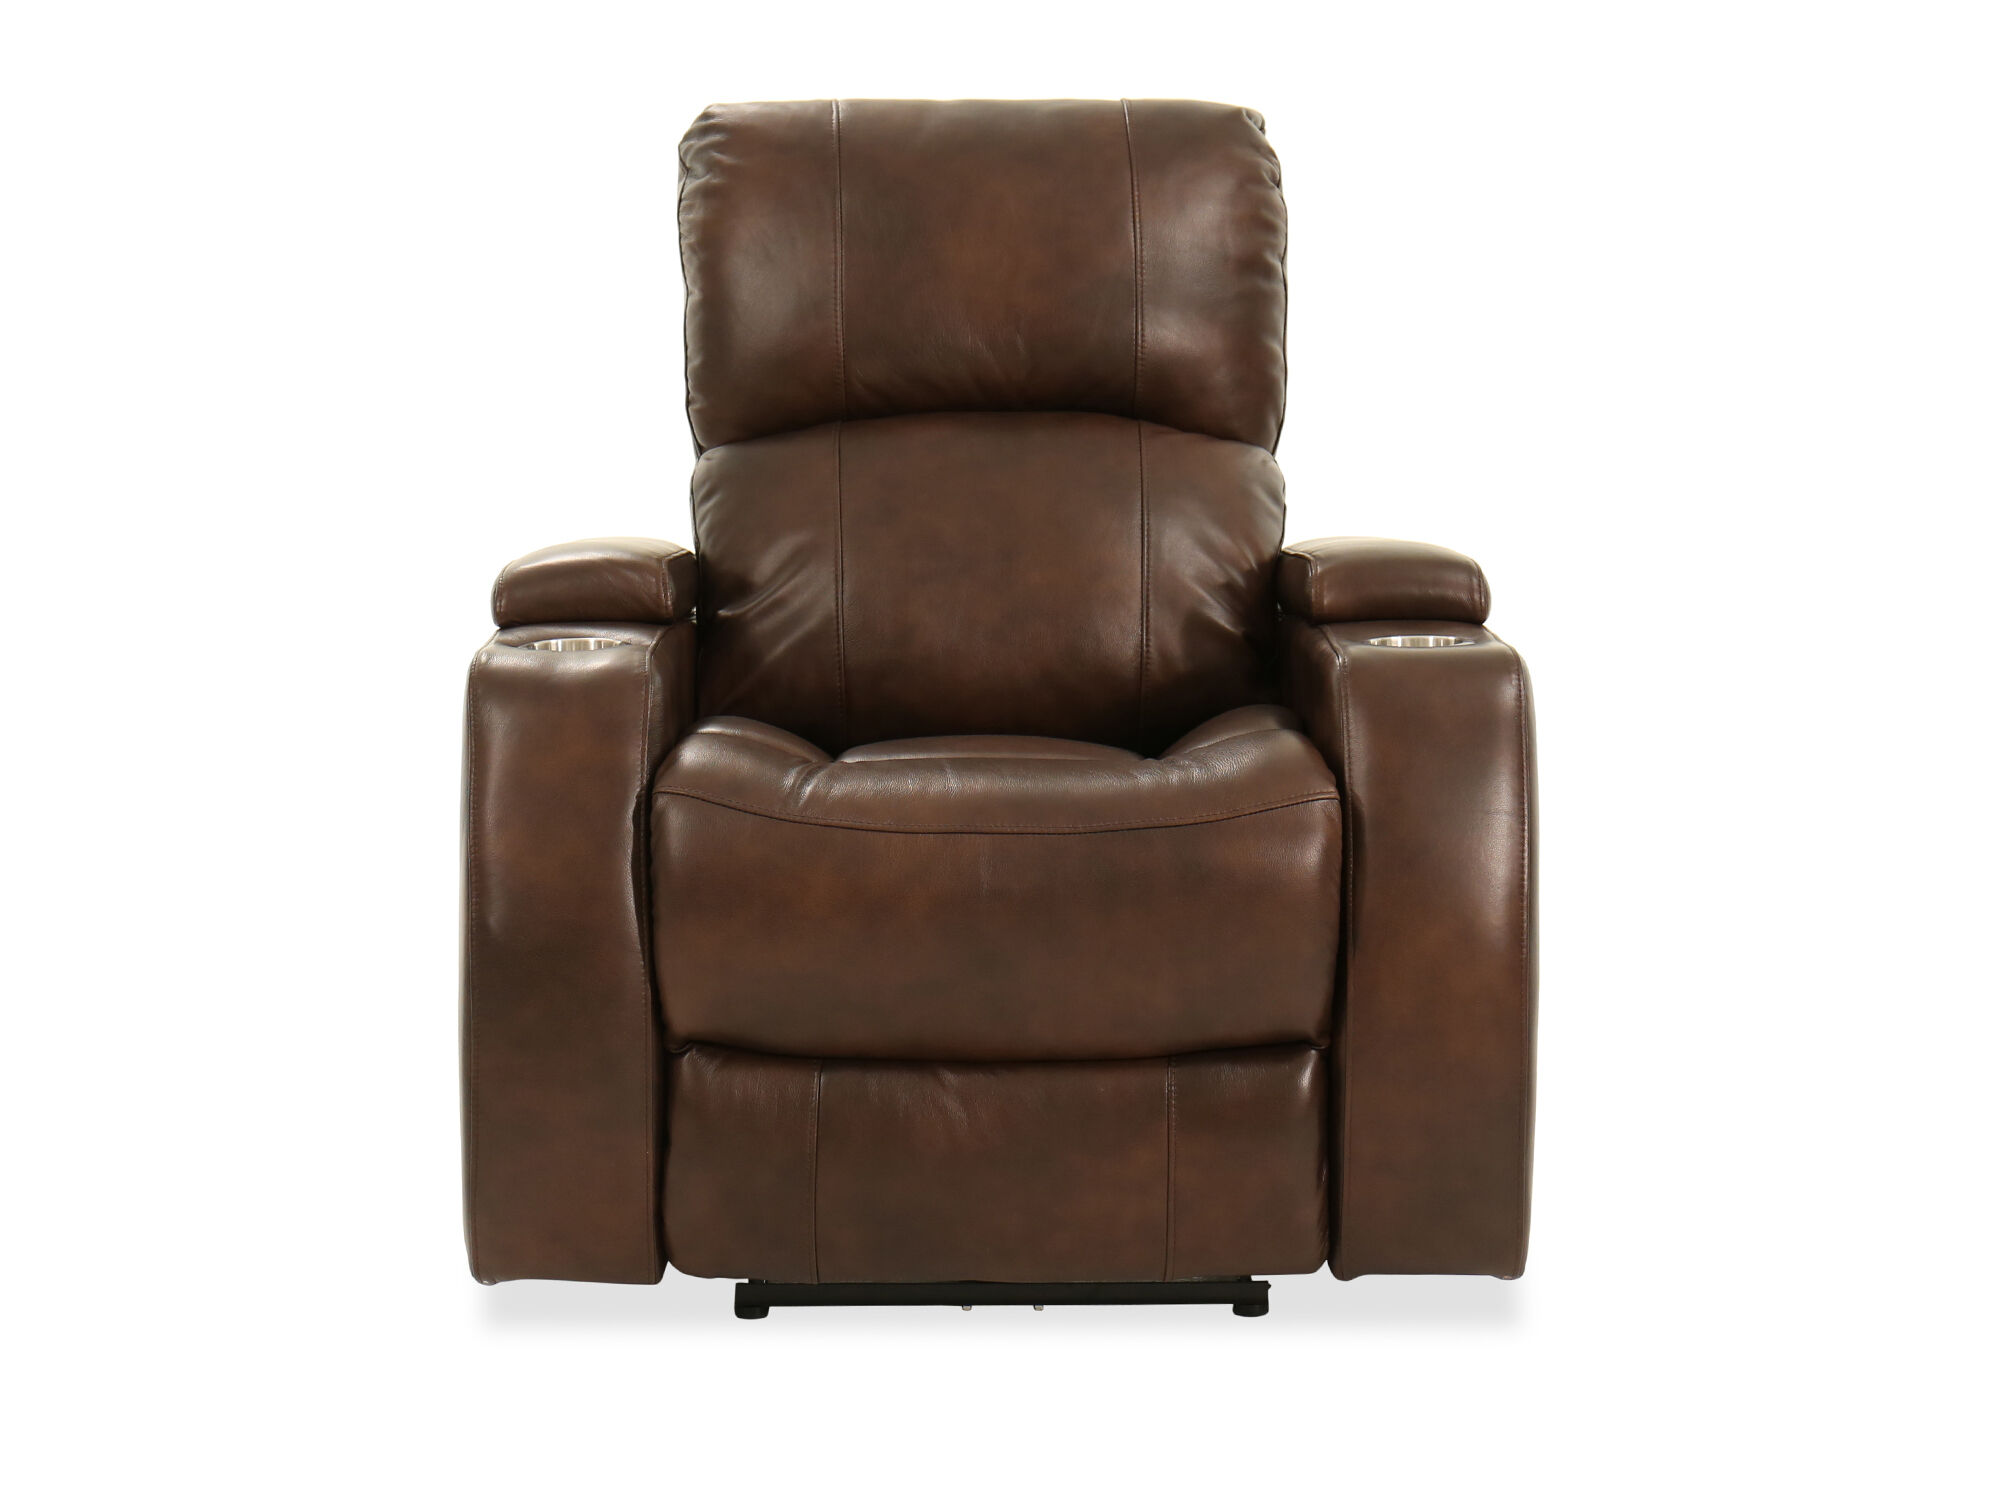 TwoCup Holder Leather 37 Power Recliner in Brown